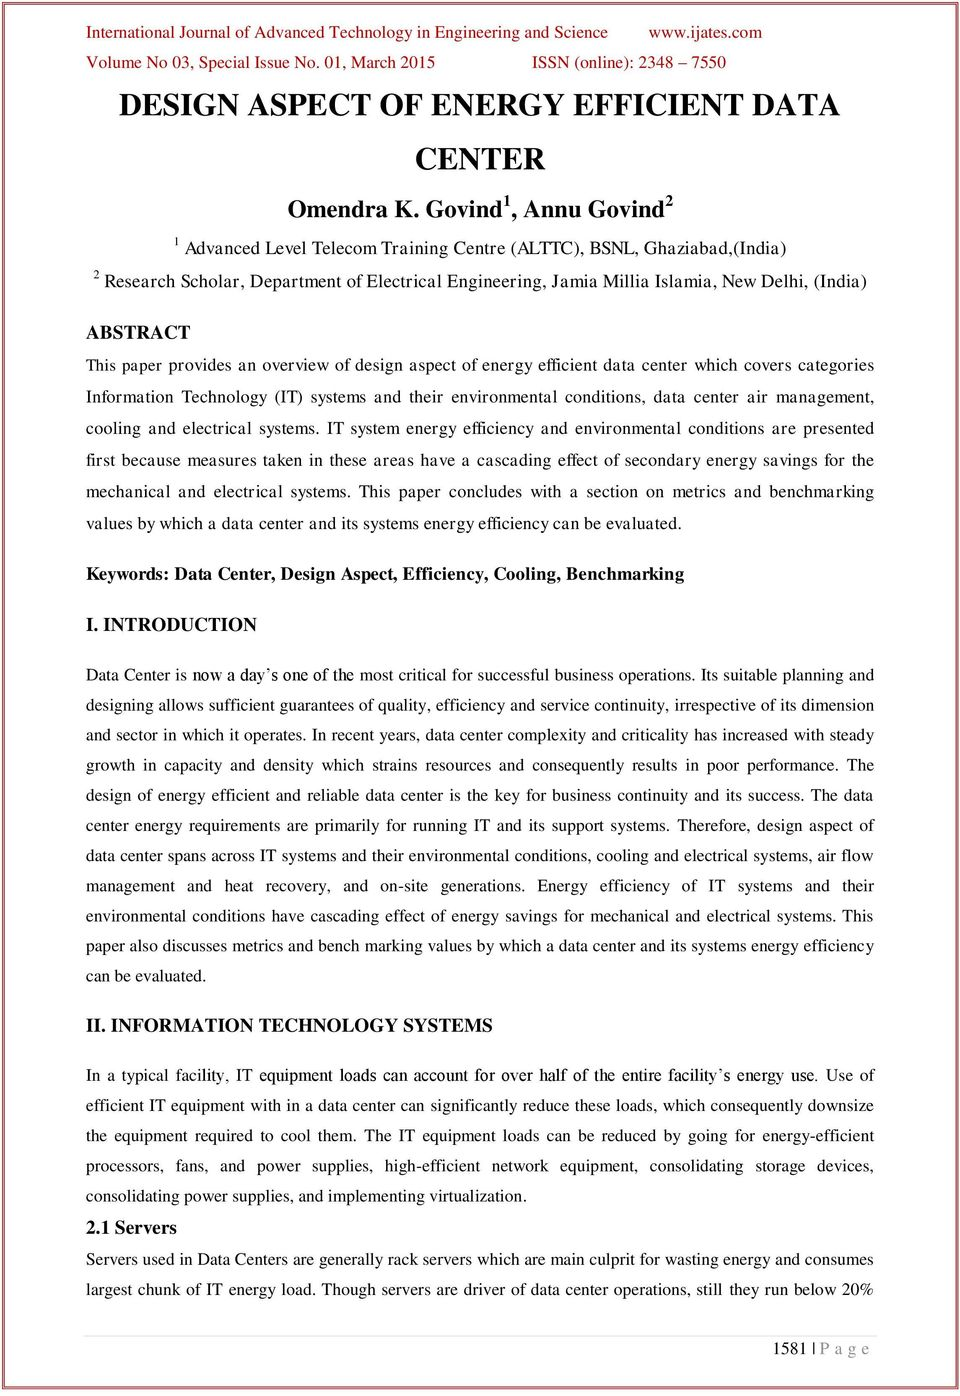 ABSTRACT This paper provides an overview of design aspect of energy efficient data center which covers categories Information Technology (IT) systems and their environmental conditions, data center